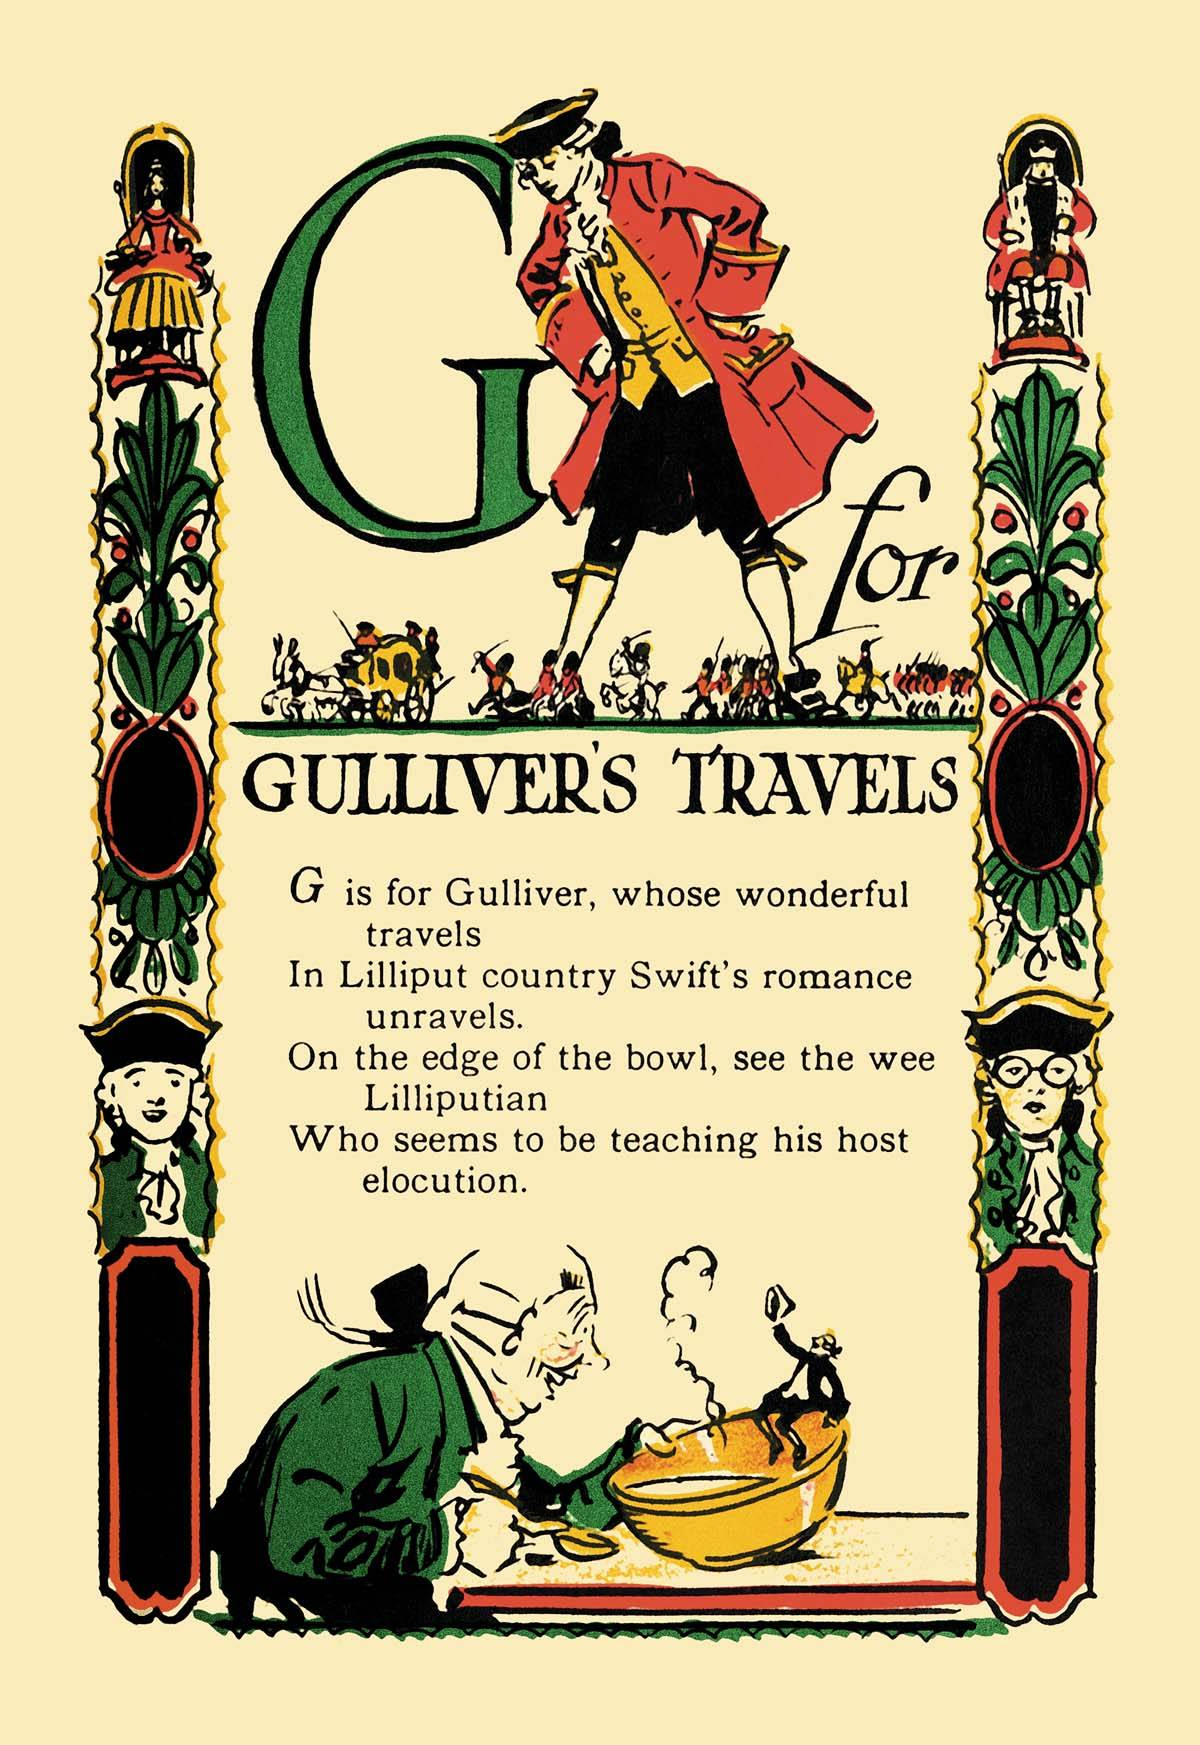 Old Book Cover Posters : G for gulliver s travels posters and canvas art prints